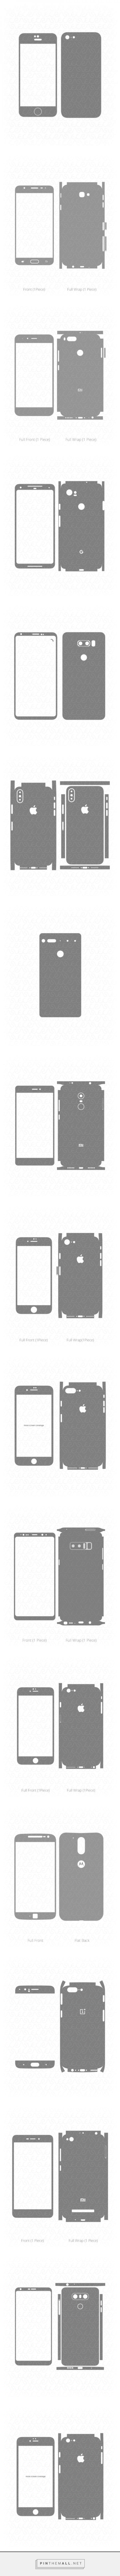 Download the vinyl cut ready vector files precisely created for all types of phones skins. Available exclusively in Ai, EPS, CDR formats for best suitability of your cutting plotters. All the popular models from the renowned brands are available like Apple iPhone, Samsung Galaxy, Google Pixel, HTC etc.